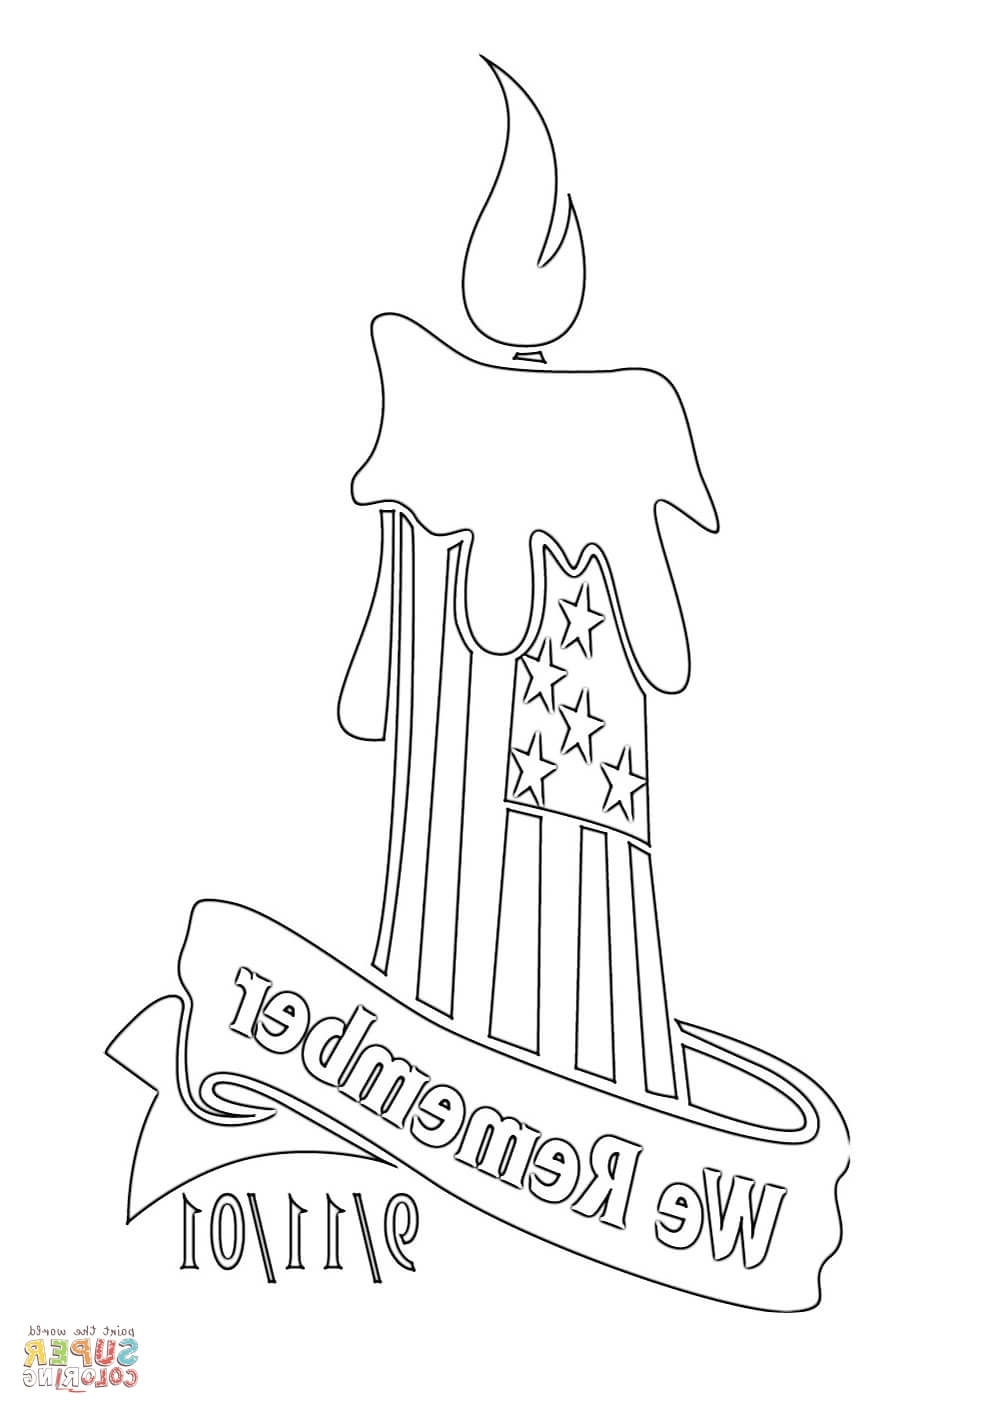 9 11 pictures to color 9 11 coloring pages free download on clipartmag 11 pictures 9 color to